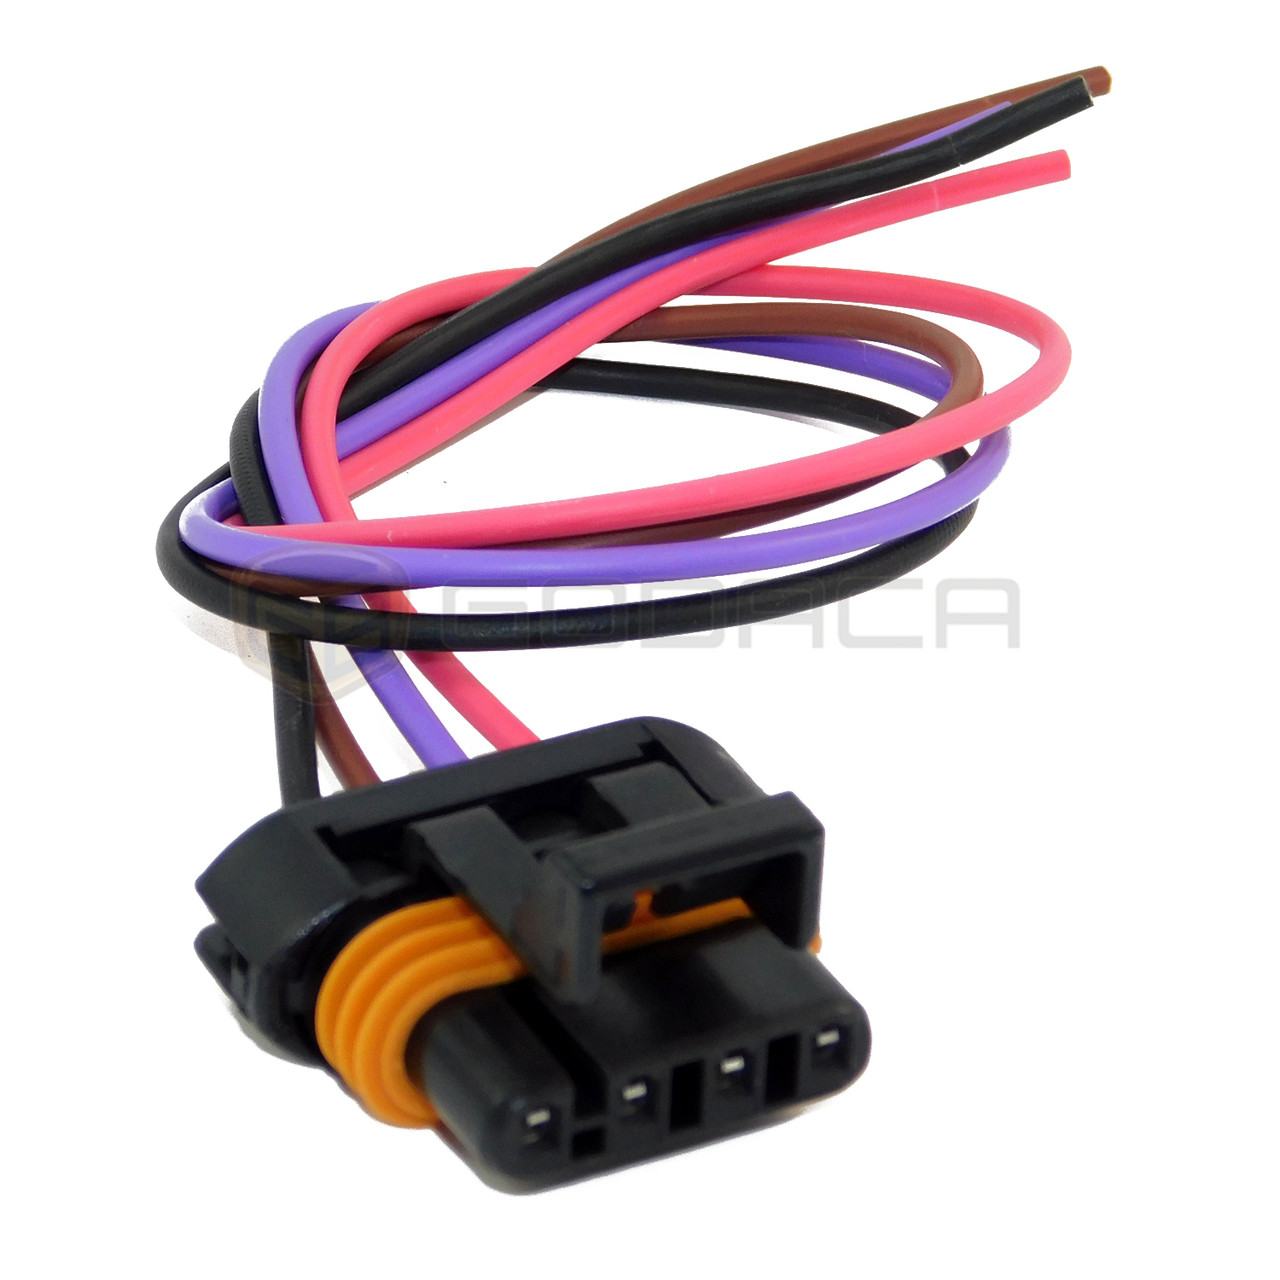 medium resolution of 1 x ls1 ls6 ignition coil wiring harness pigtail connector gm camaro corvette godaca llc